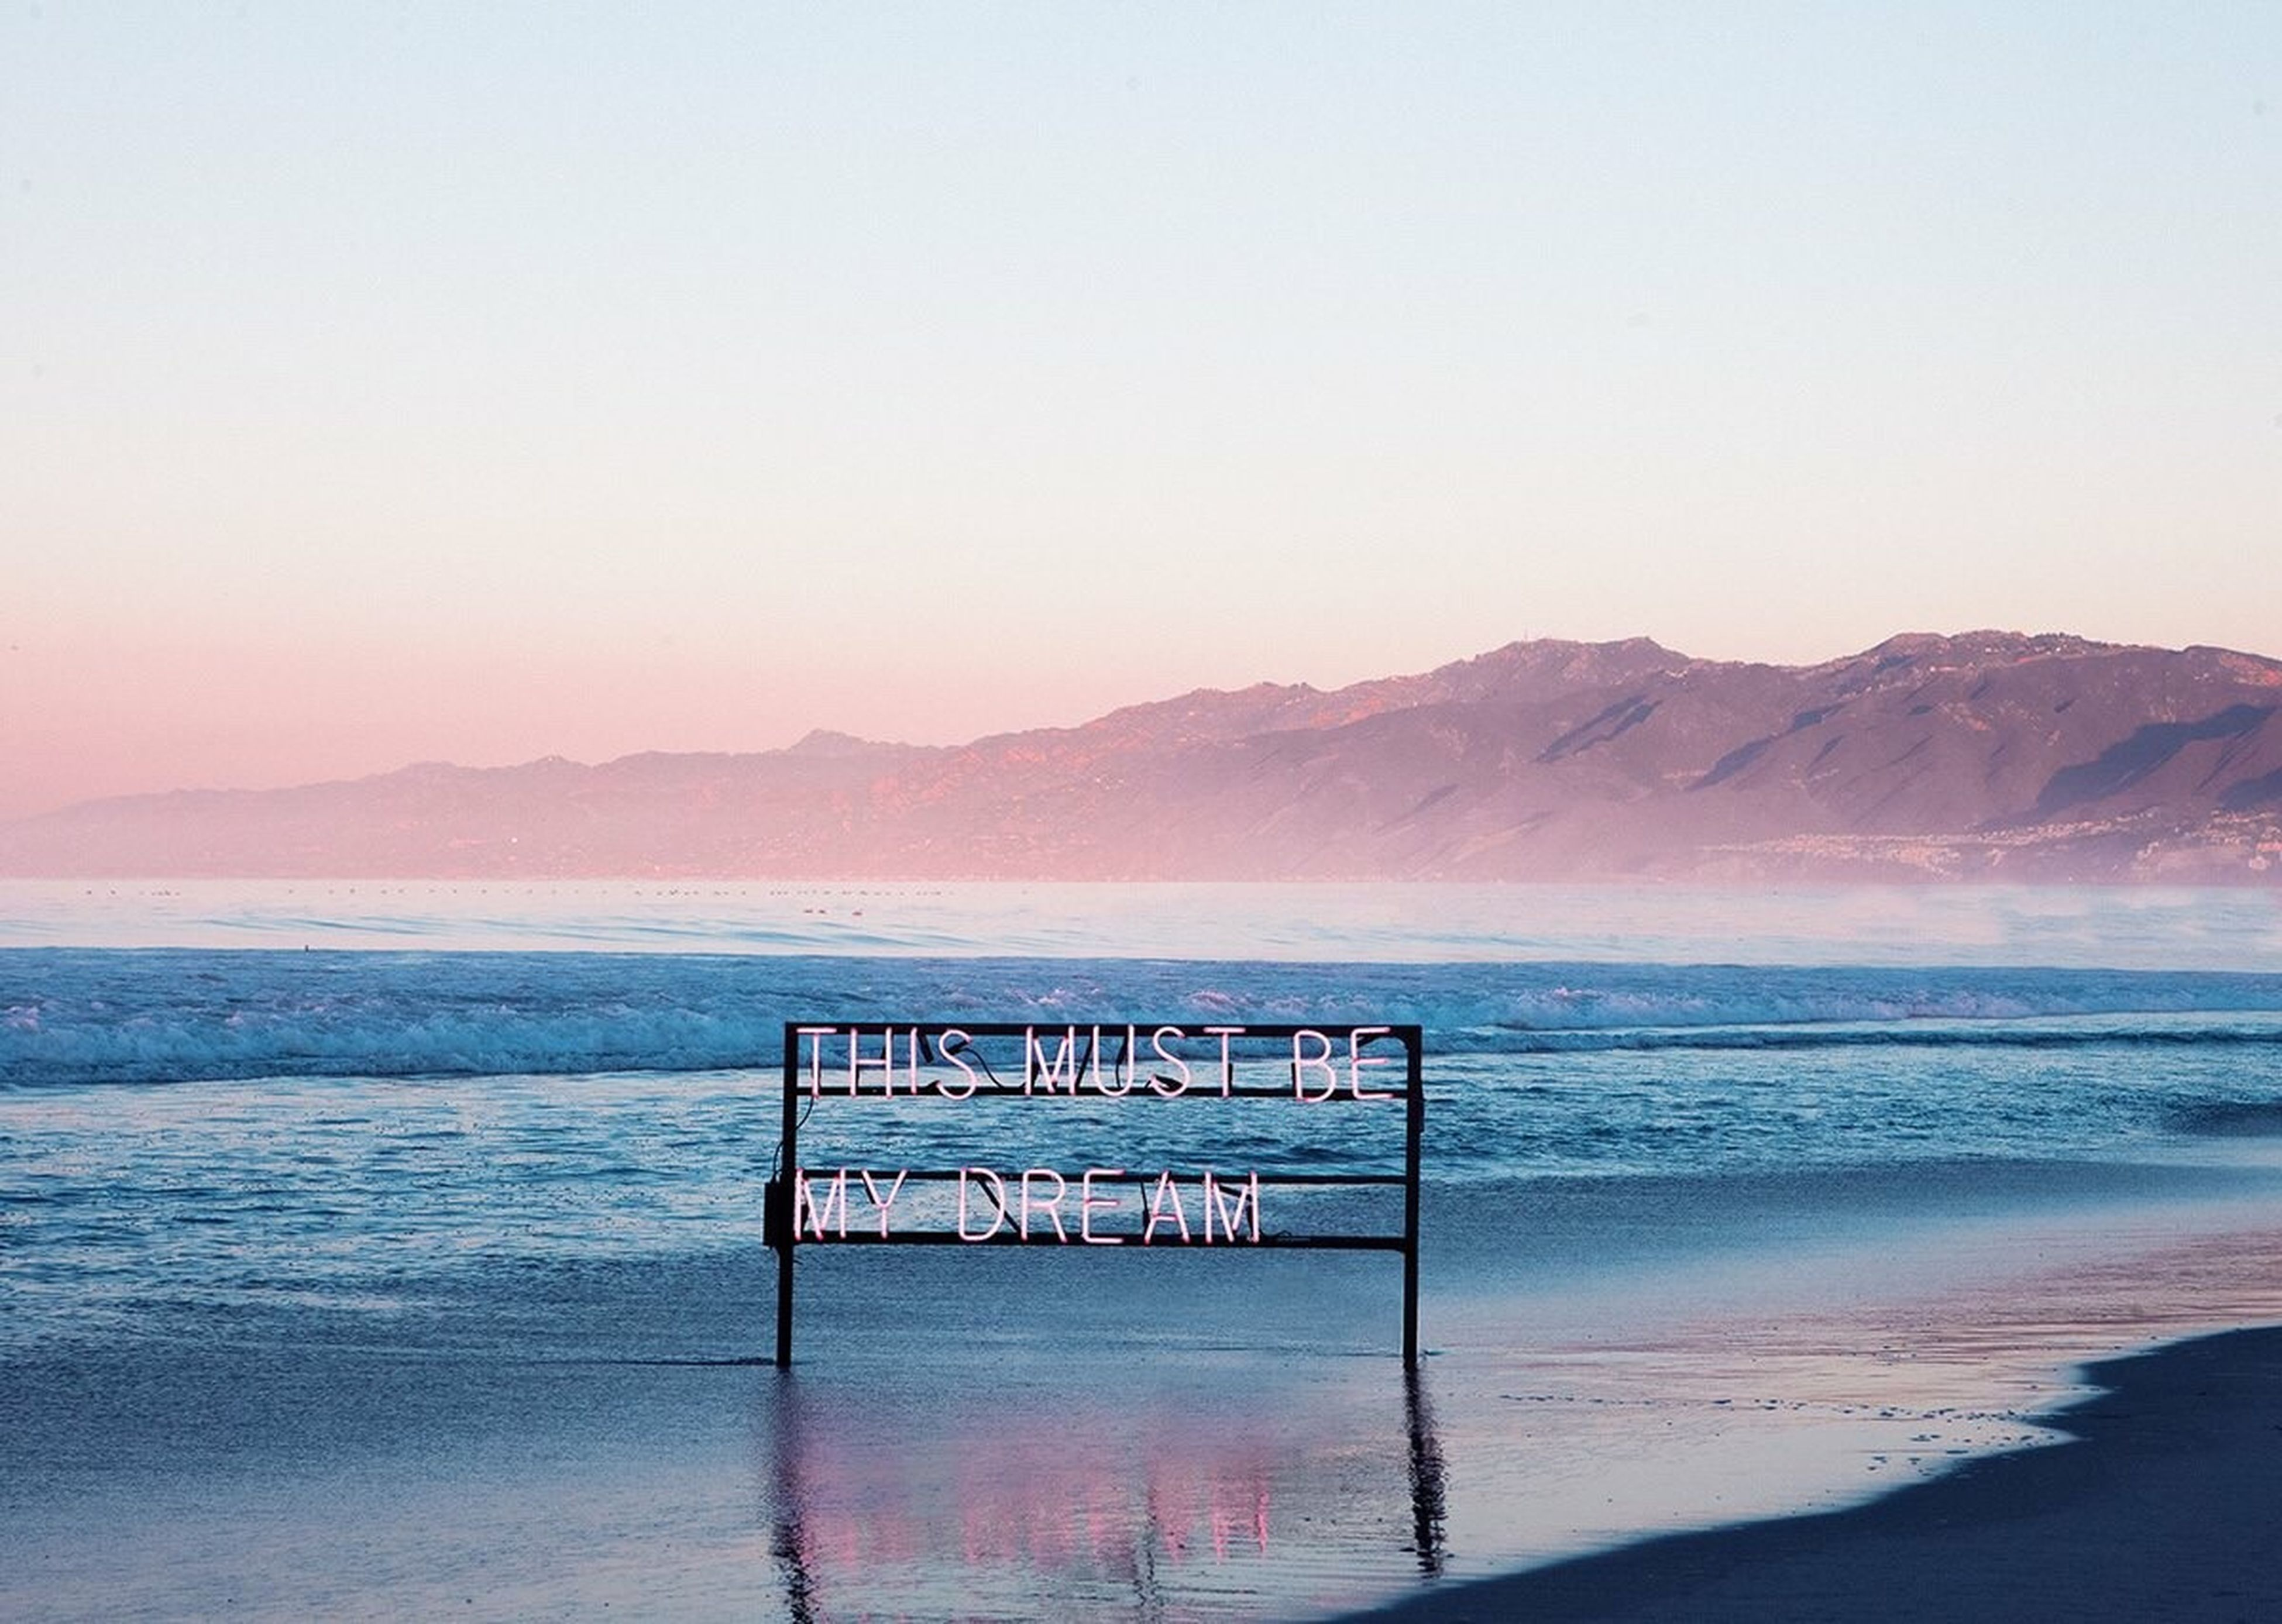 sea, water, beach, scenics, horizon over water, tranquil scene, tranquility, beauty in nature, shore, mountain, nature, clear sky, idyllic, sand, sky, copy space, pier, remote, wave, non-urban scene